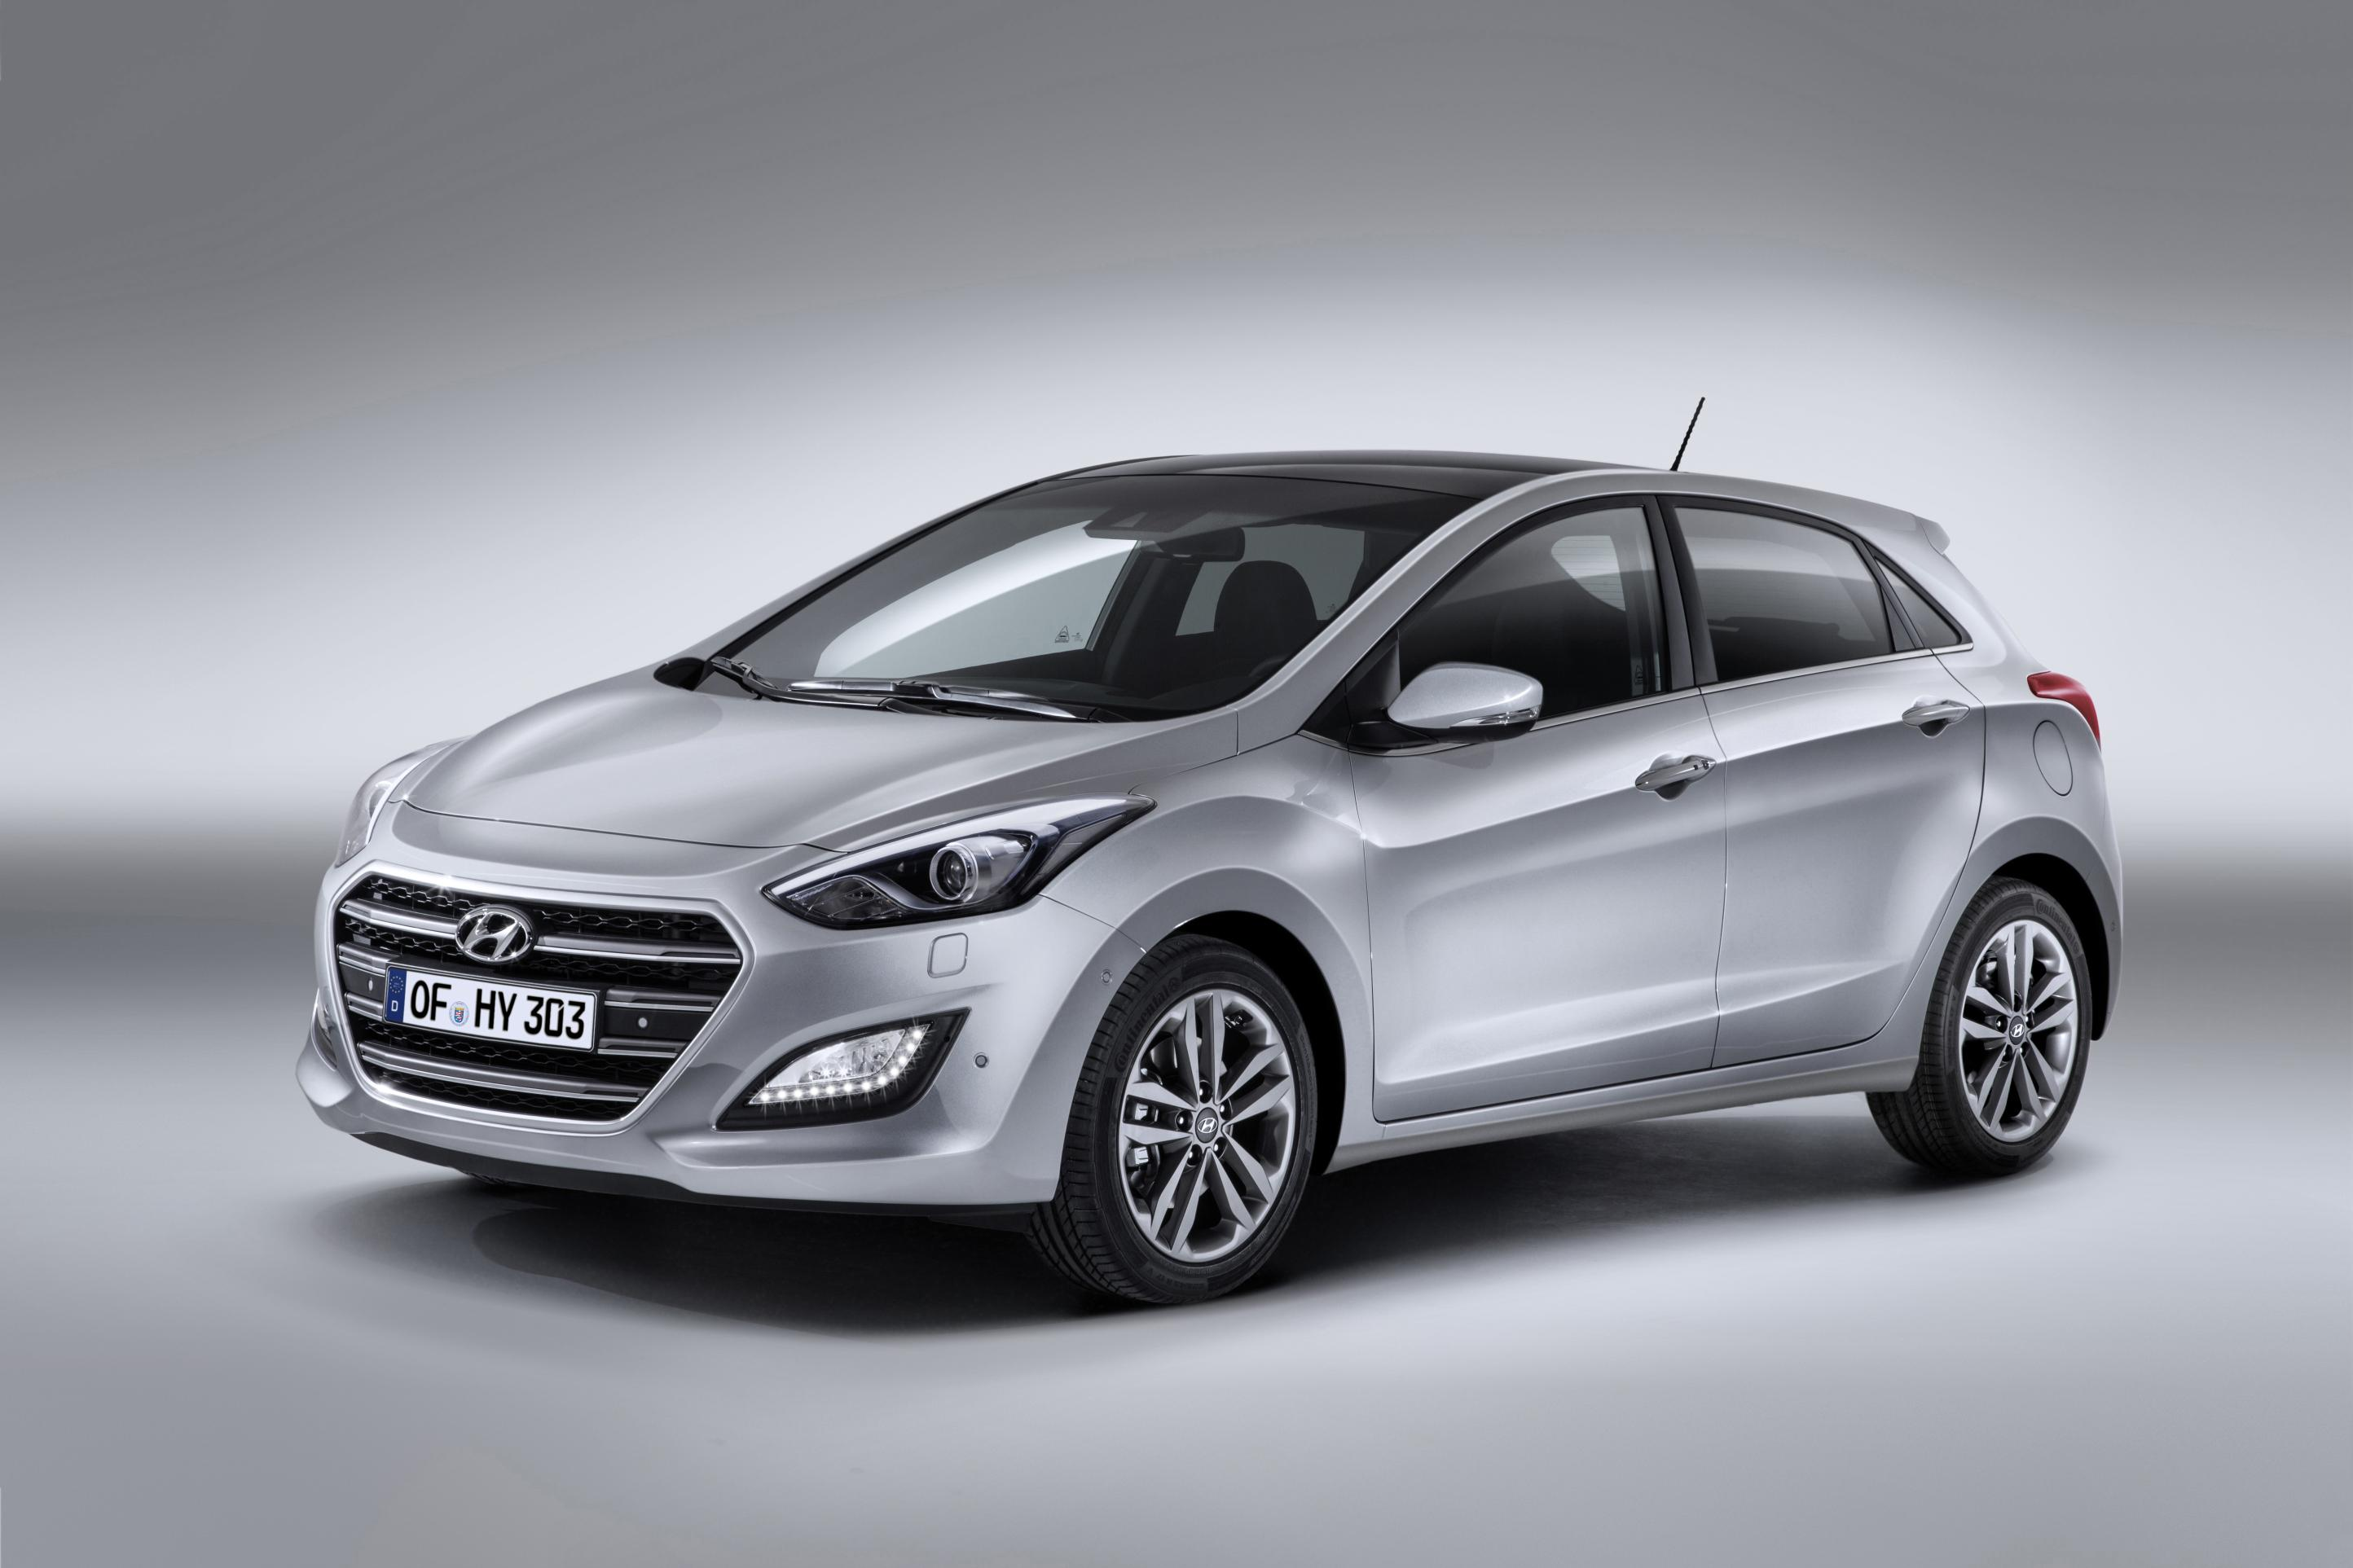 range monthly blue feature motor derivative rejuvenates revised gets grand front features rejuvenated new hyundai